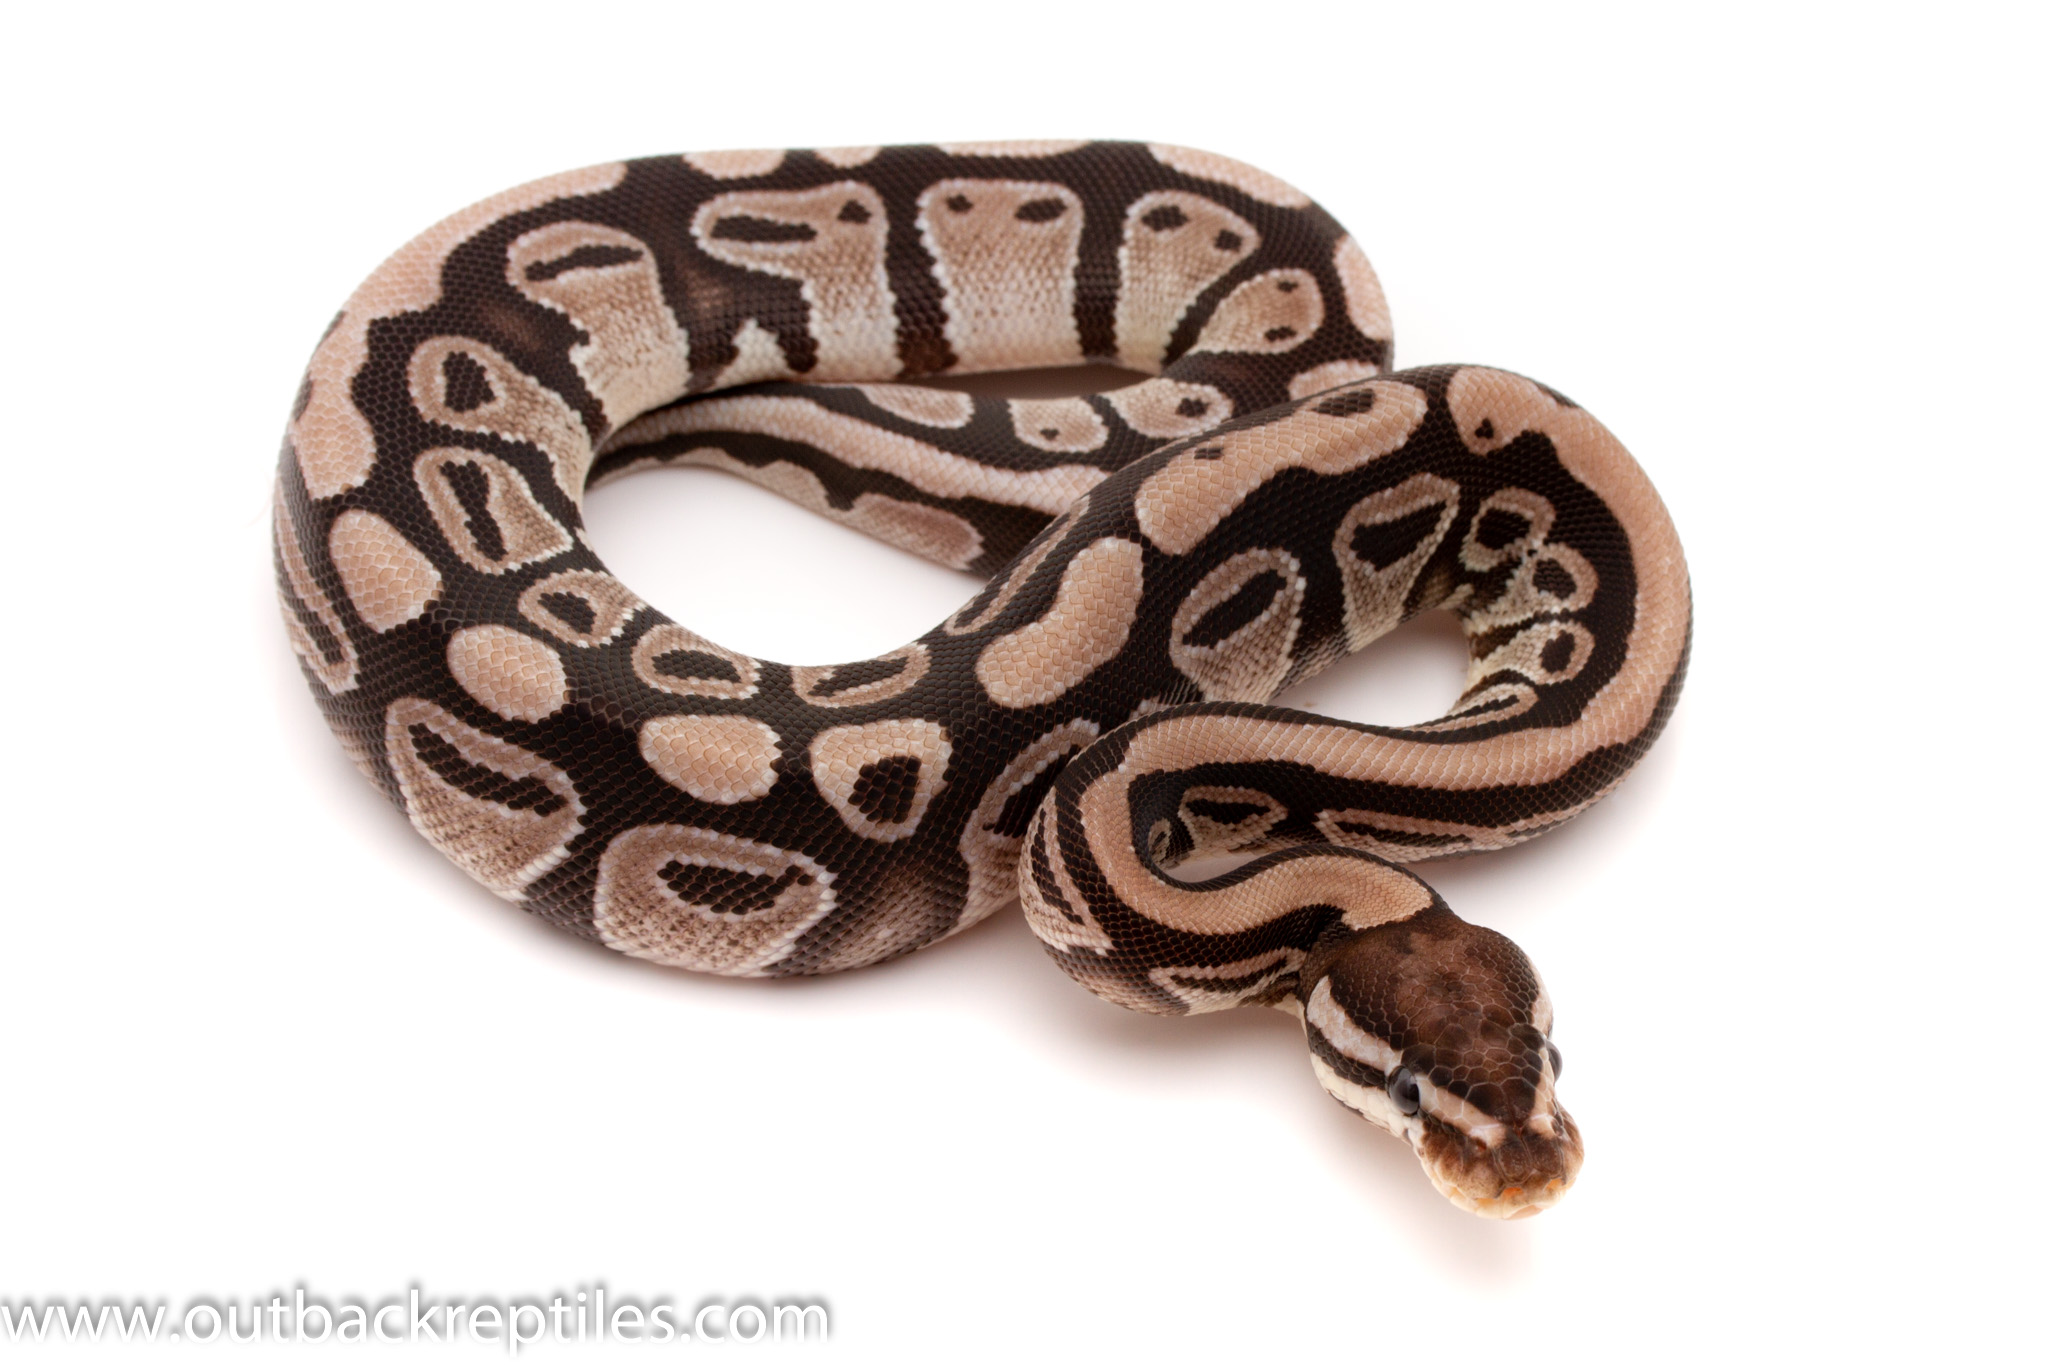 axanthic ball python for sale